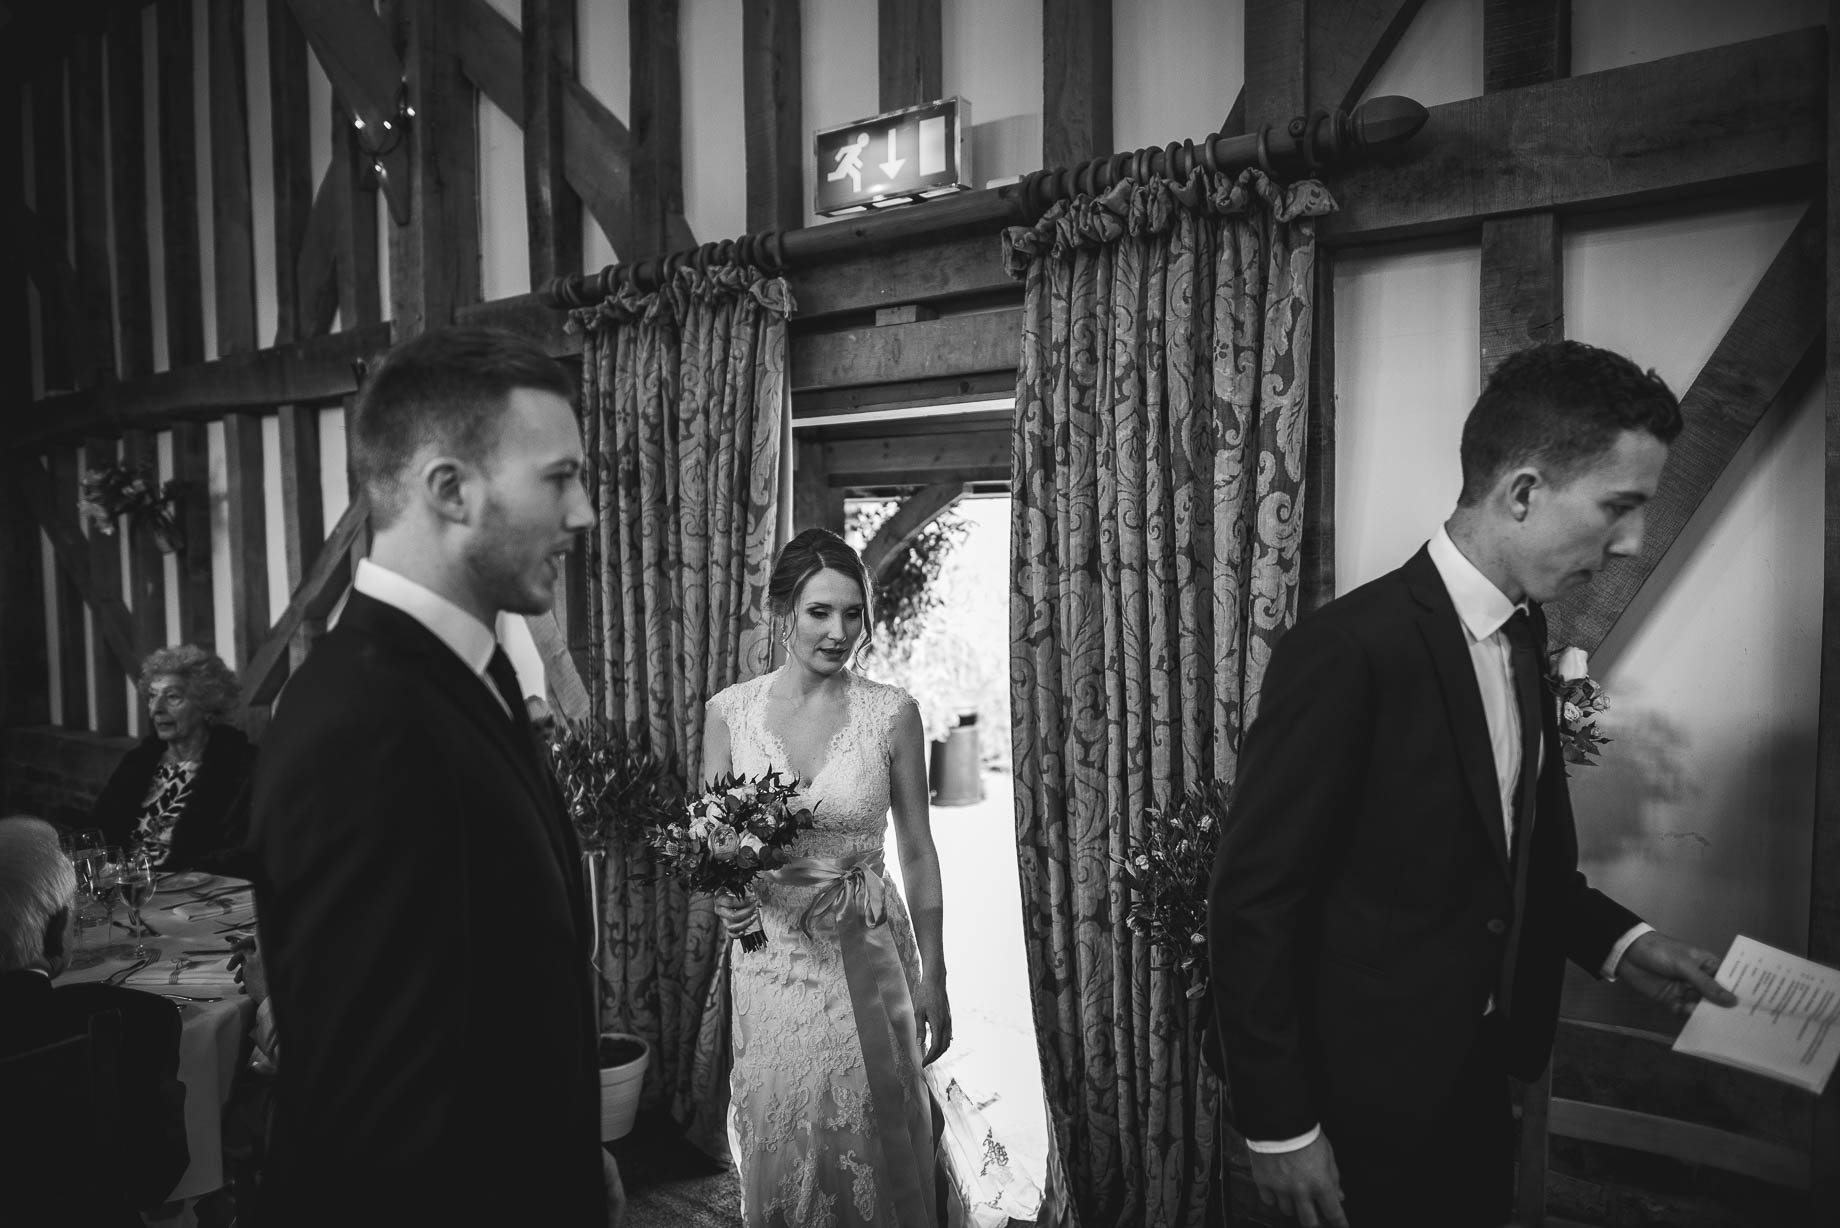 Surrey Wedding Photography by Guy Collier - Becca and James (119 of 145)